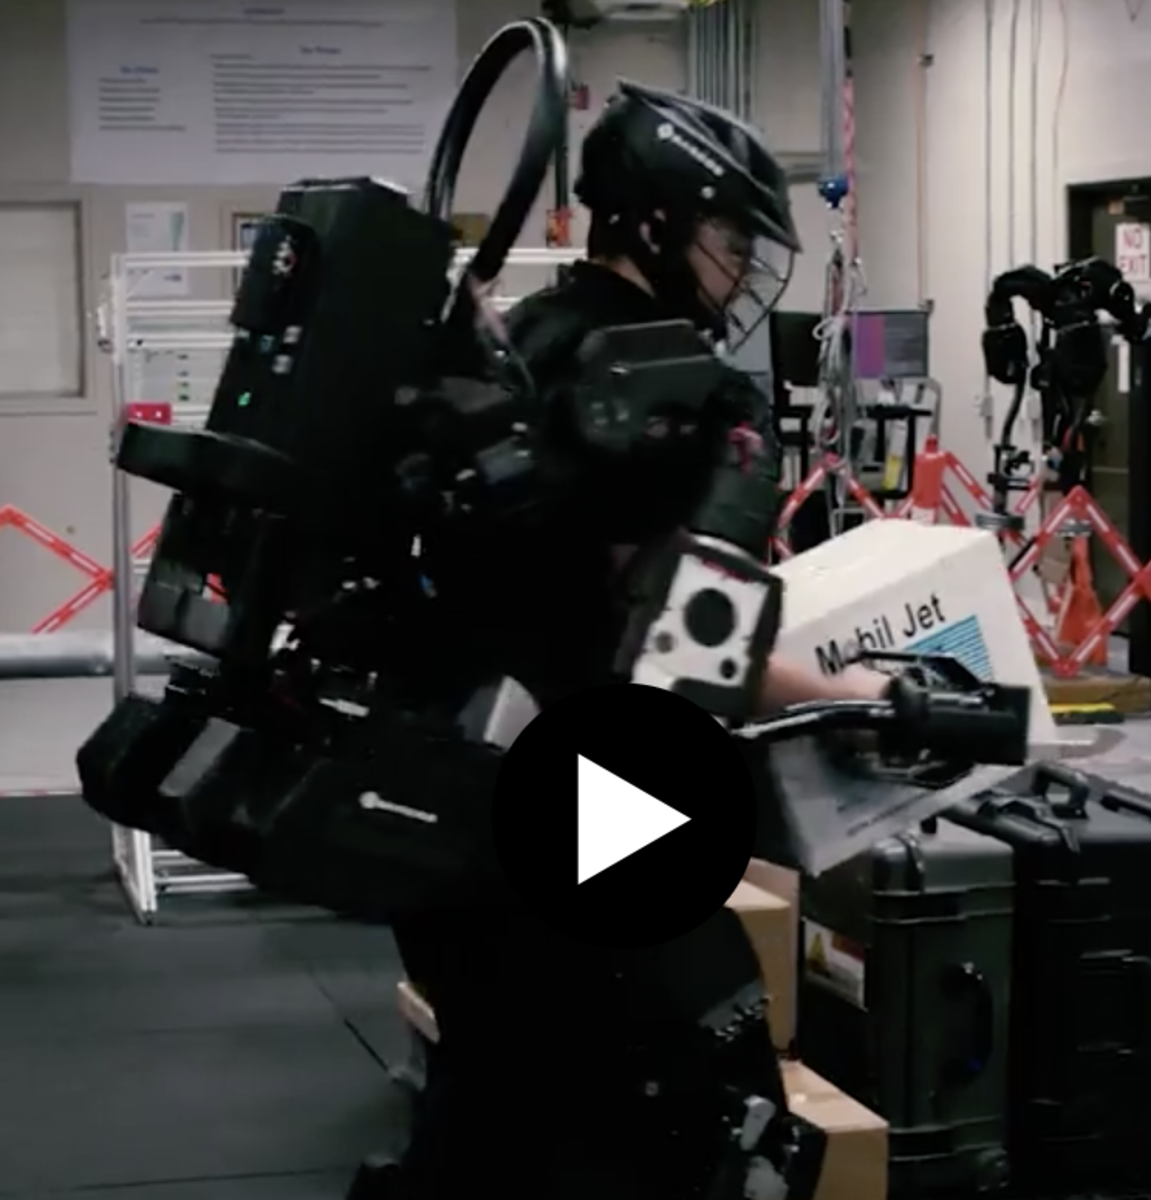 The Sarcos exoskeleton can be worn like a backpack, but allows the wearer to carry up to 200 lbs.